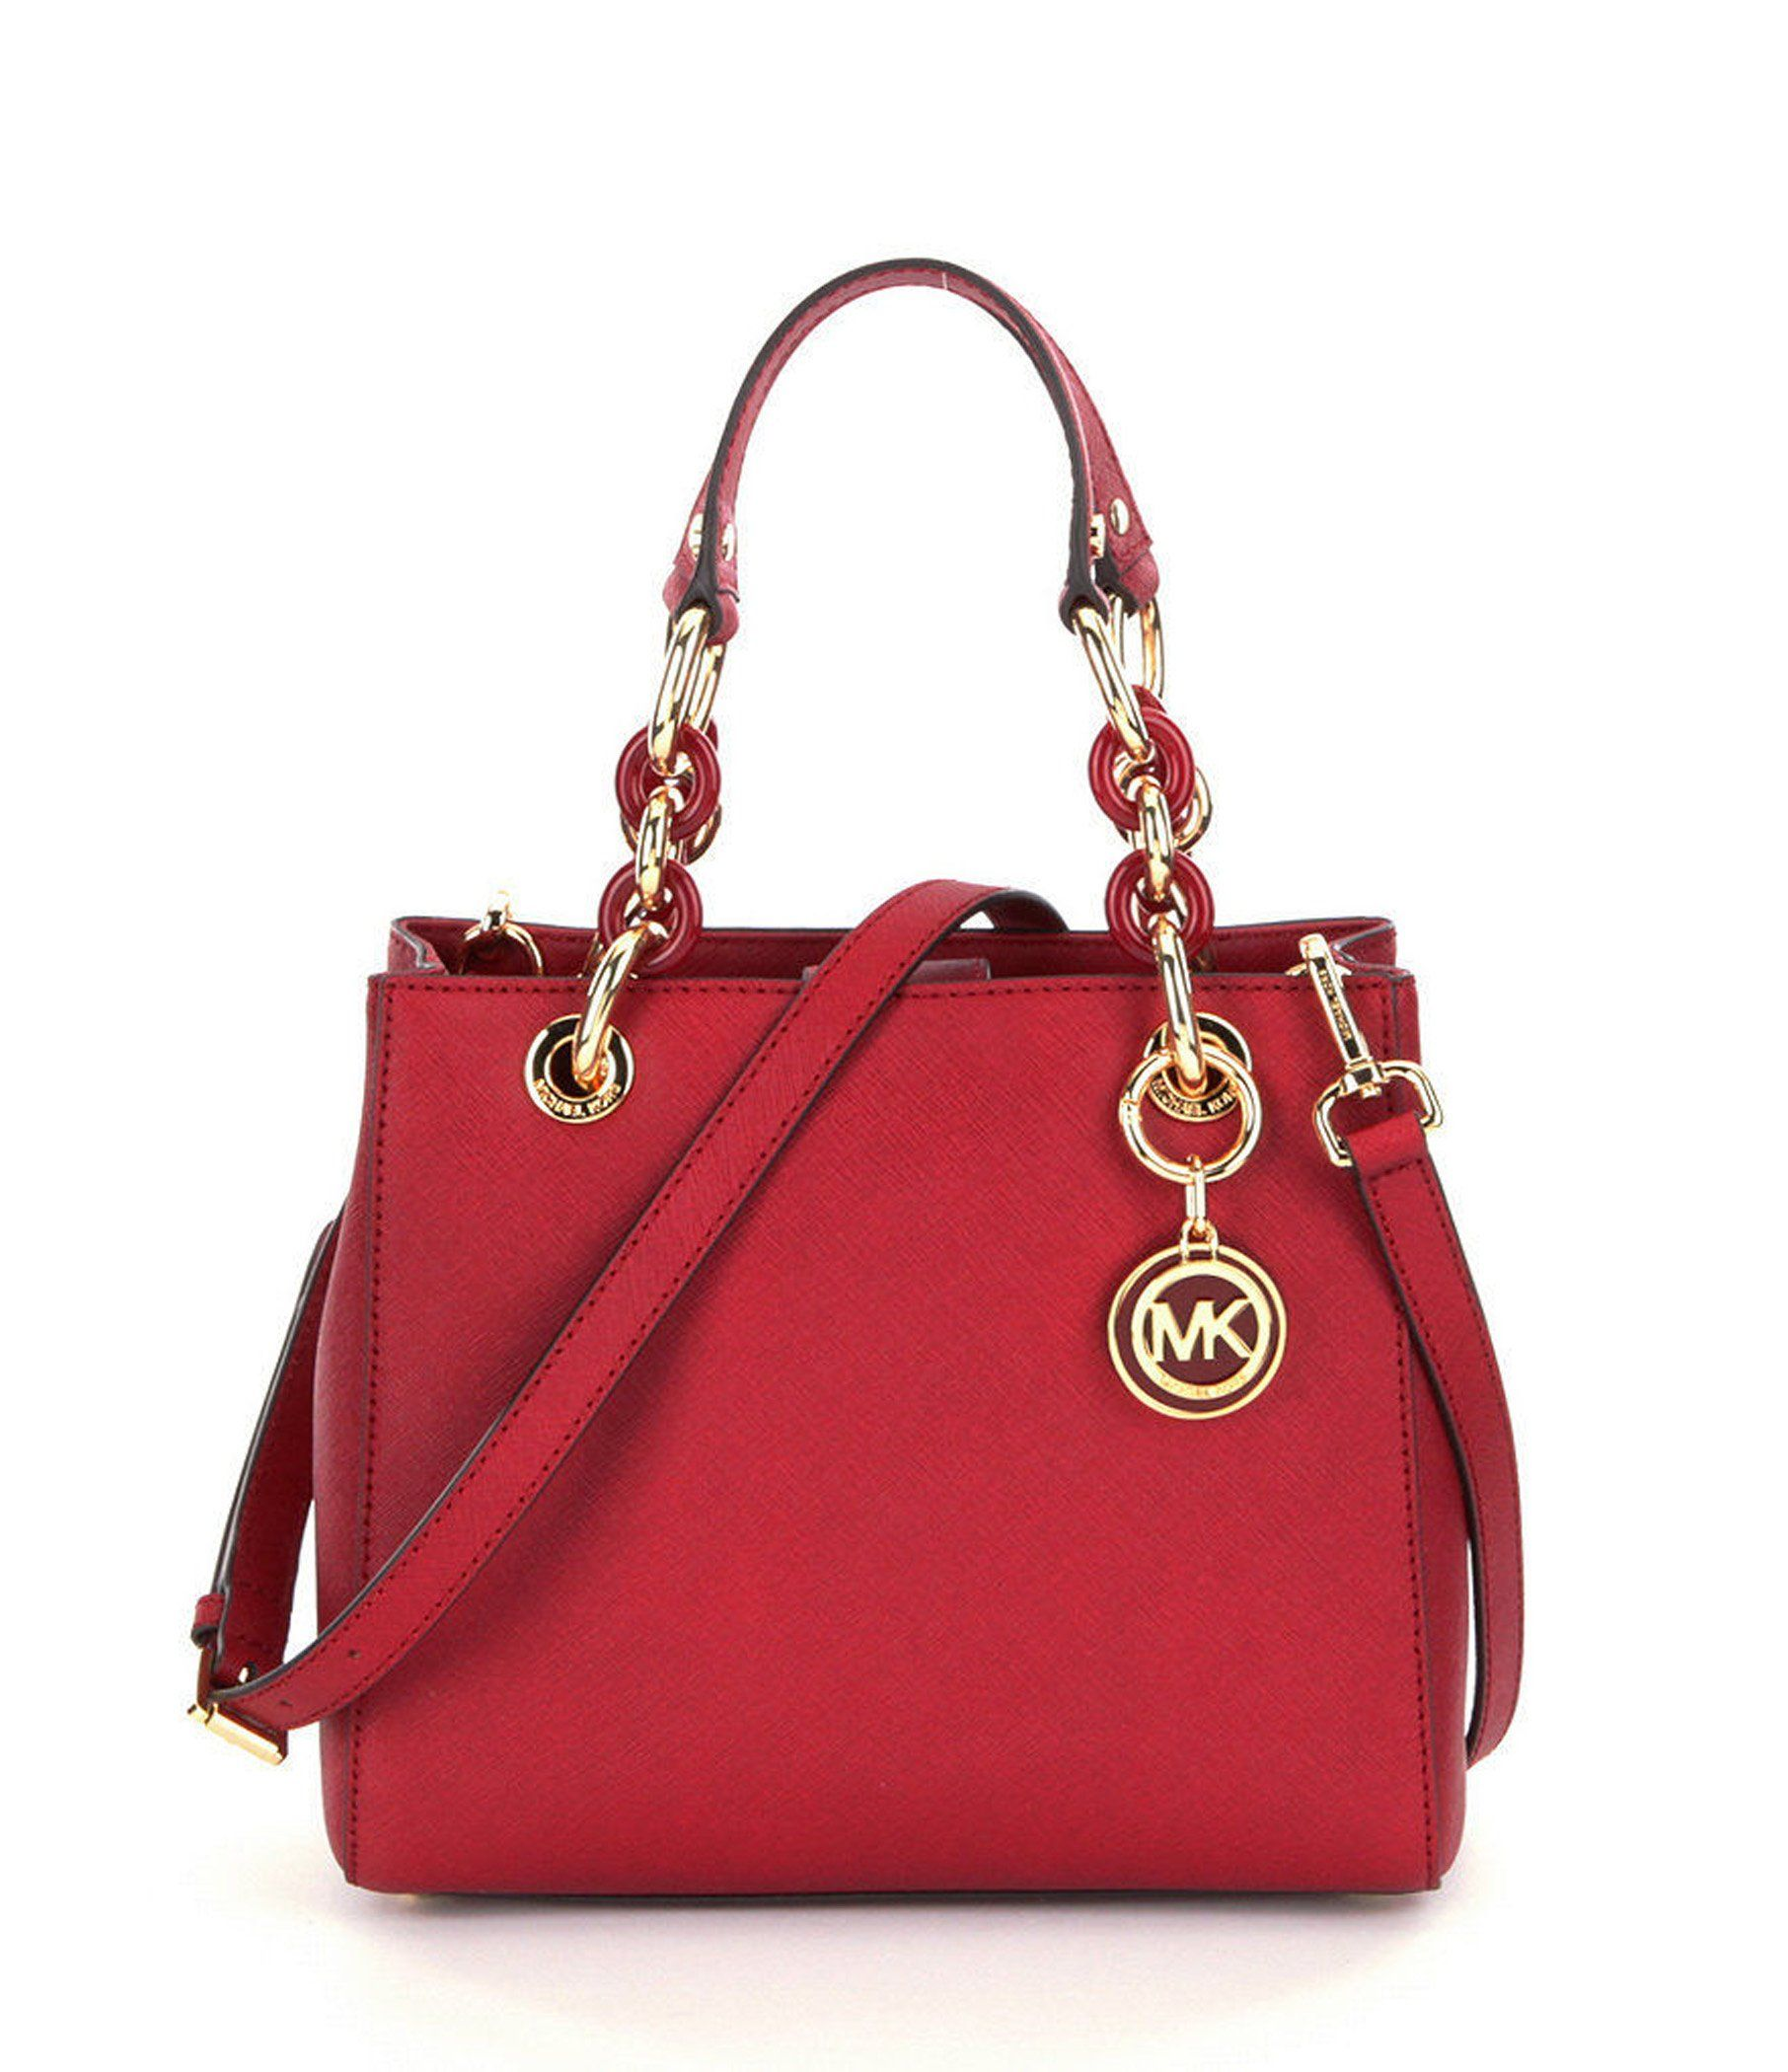 2d581e957139 Michael Kors Cynthia Small North South Red Leather Satchel | táska ...